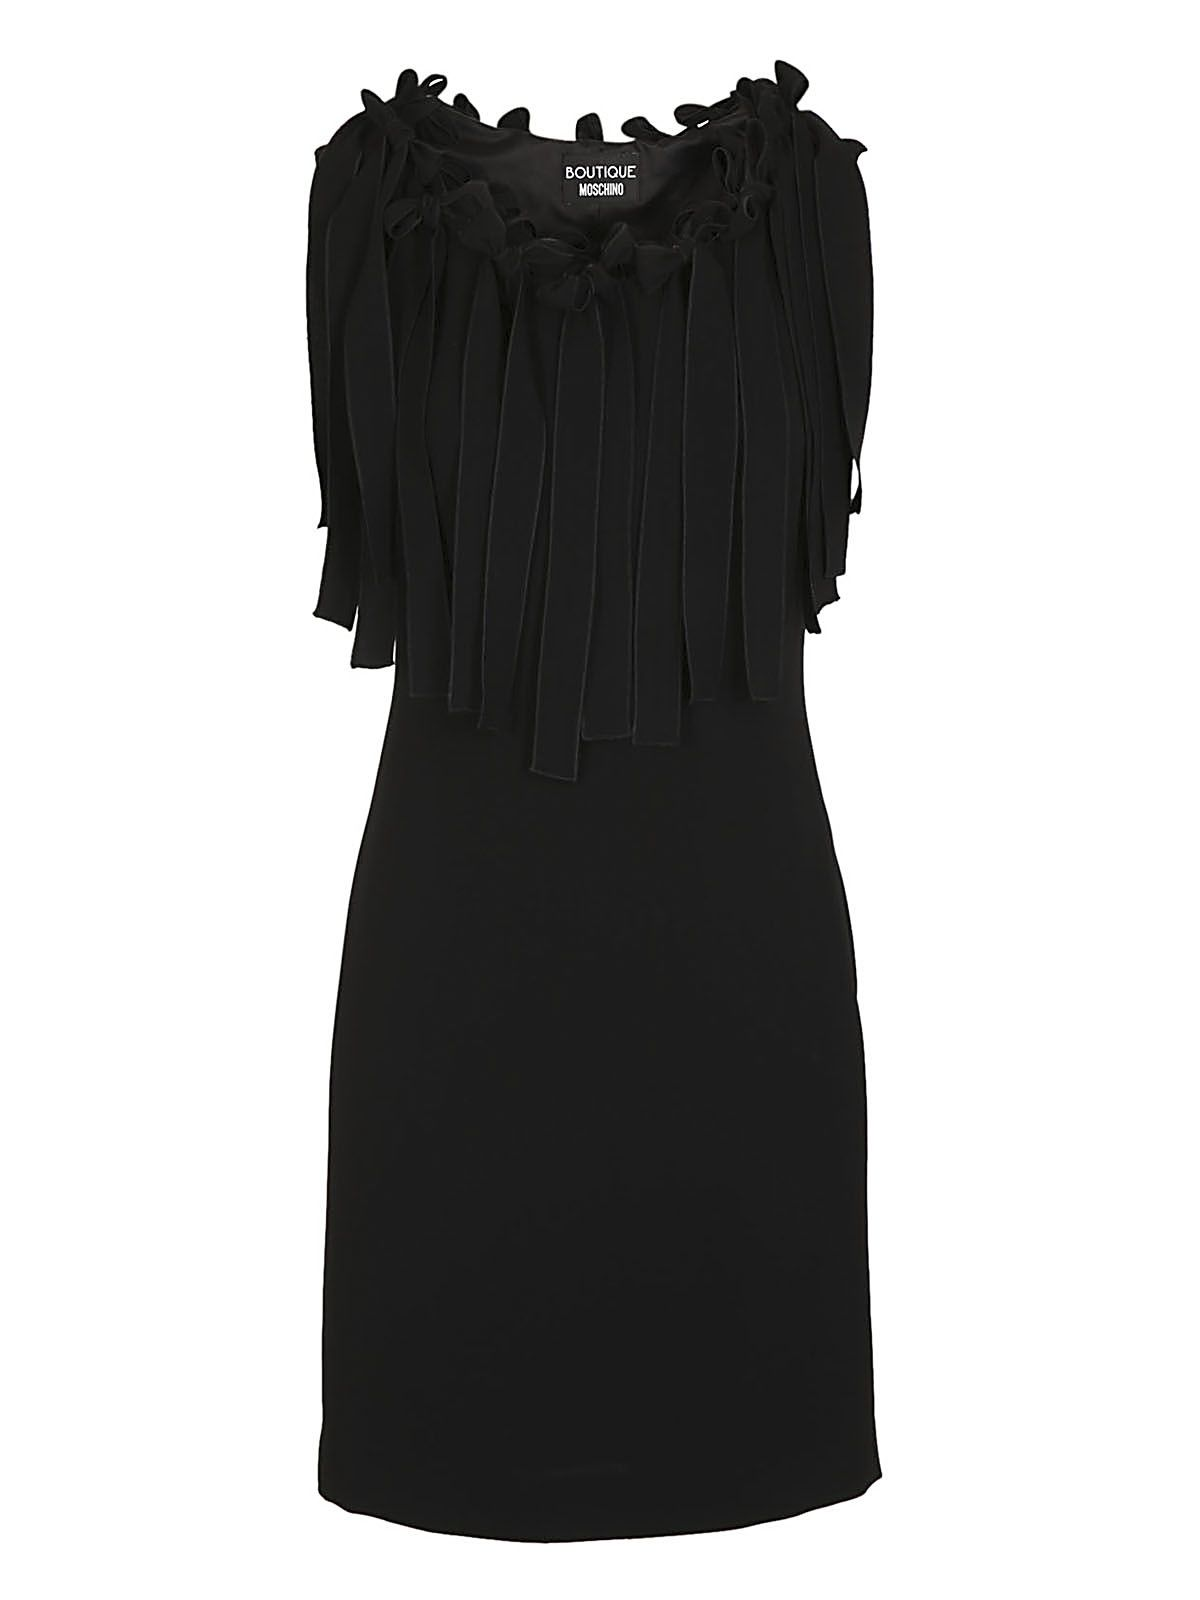 Boutique Moschino Fringe Dress